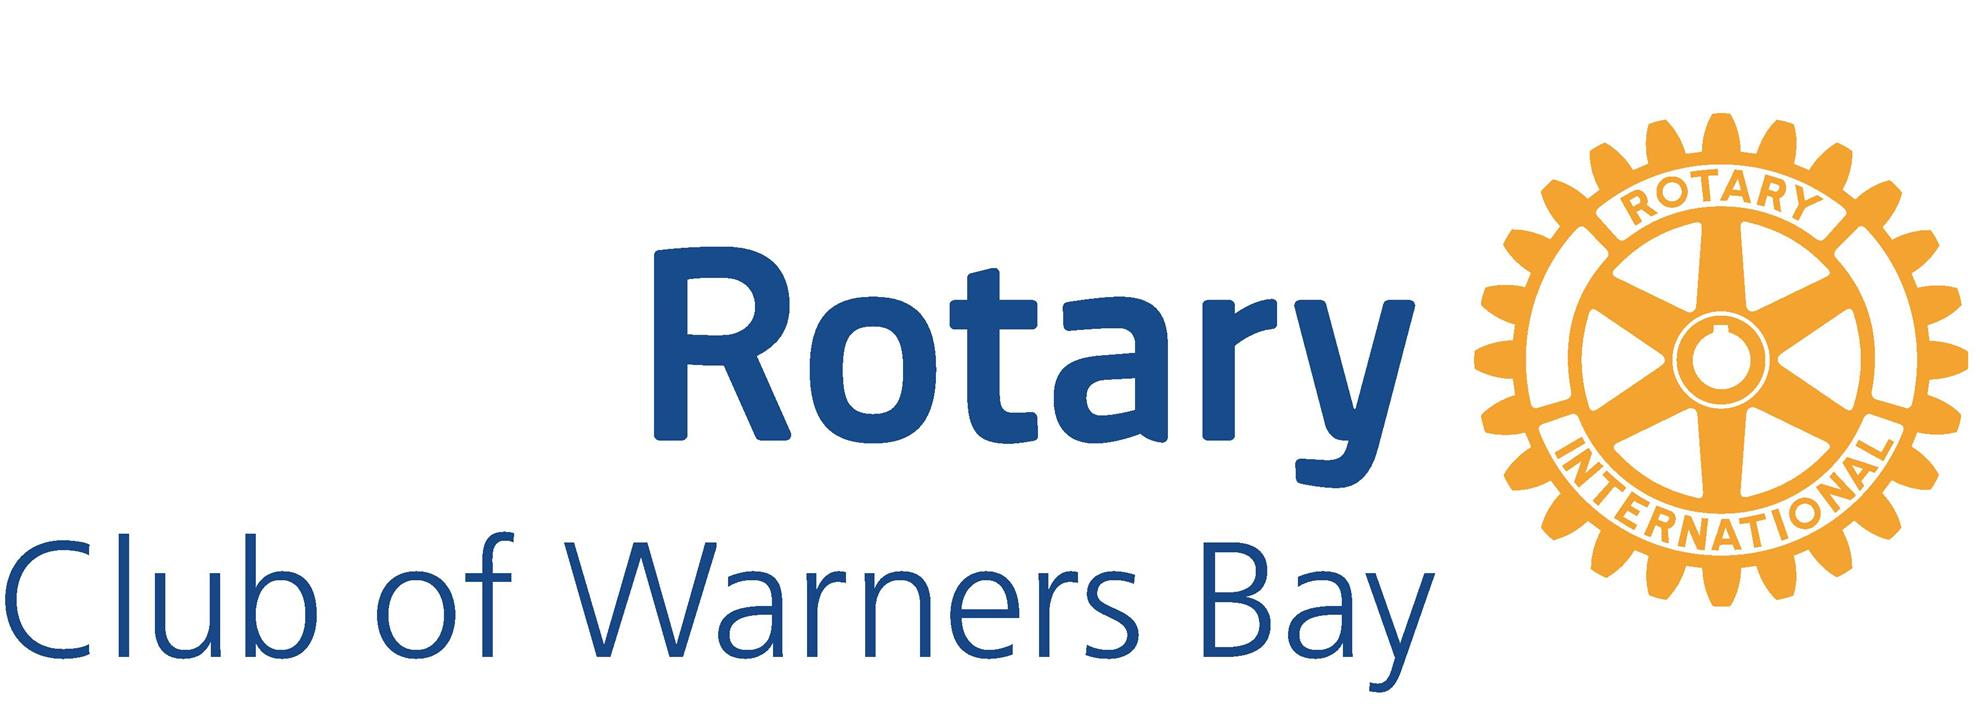 Warner's Bay logo